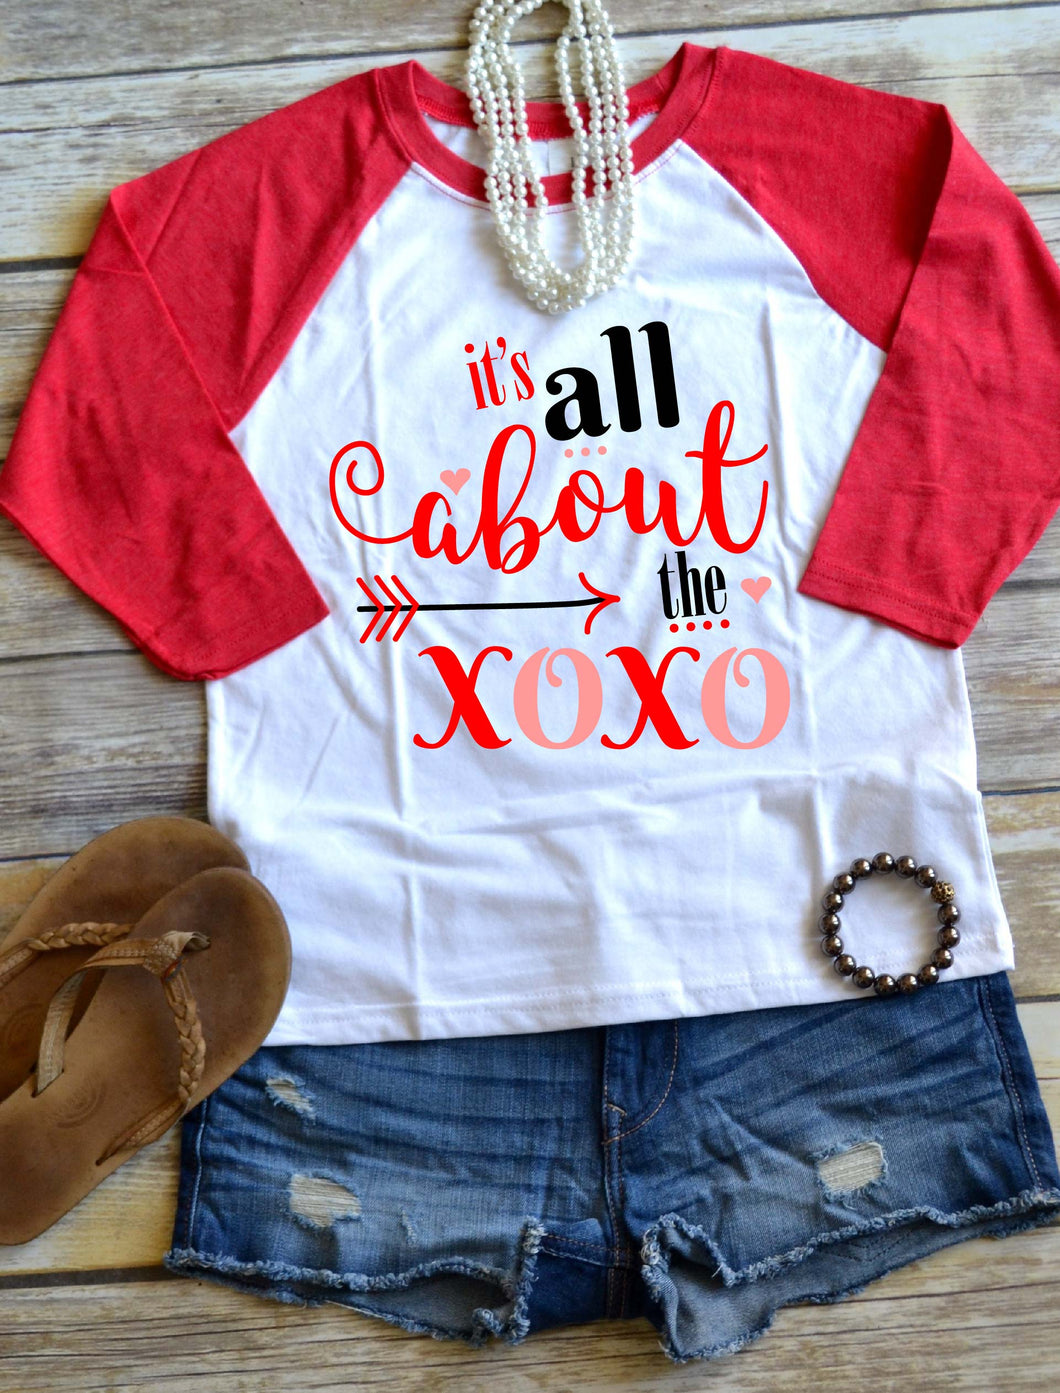 Valentine's Day Shirt: It's All About the XOXO